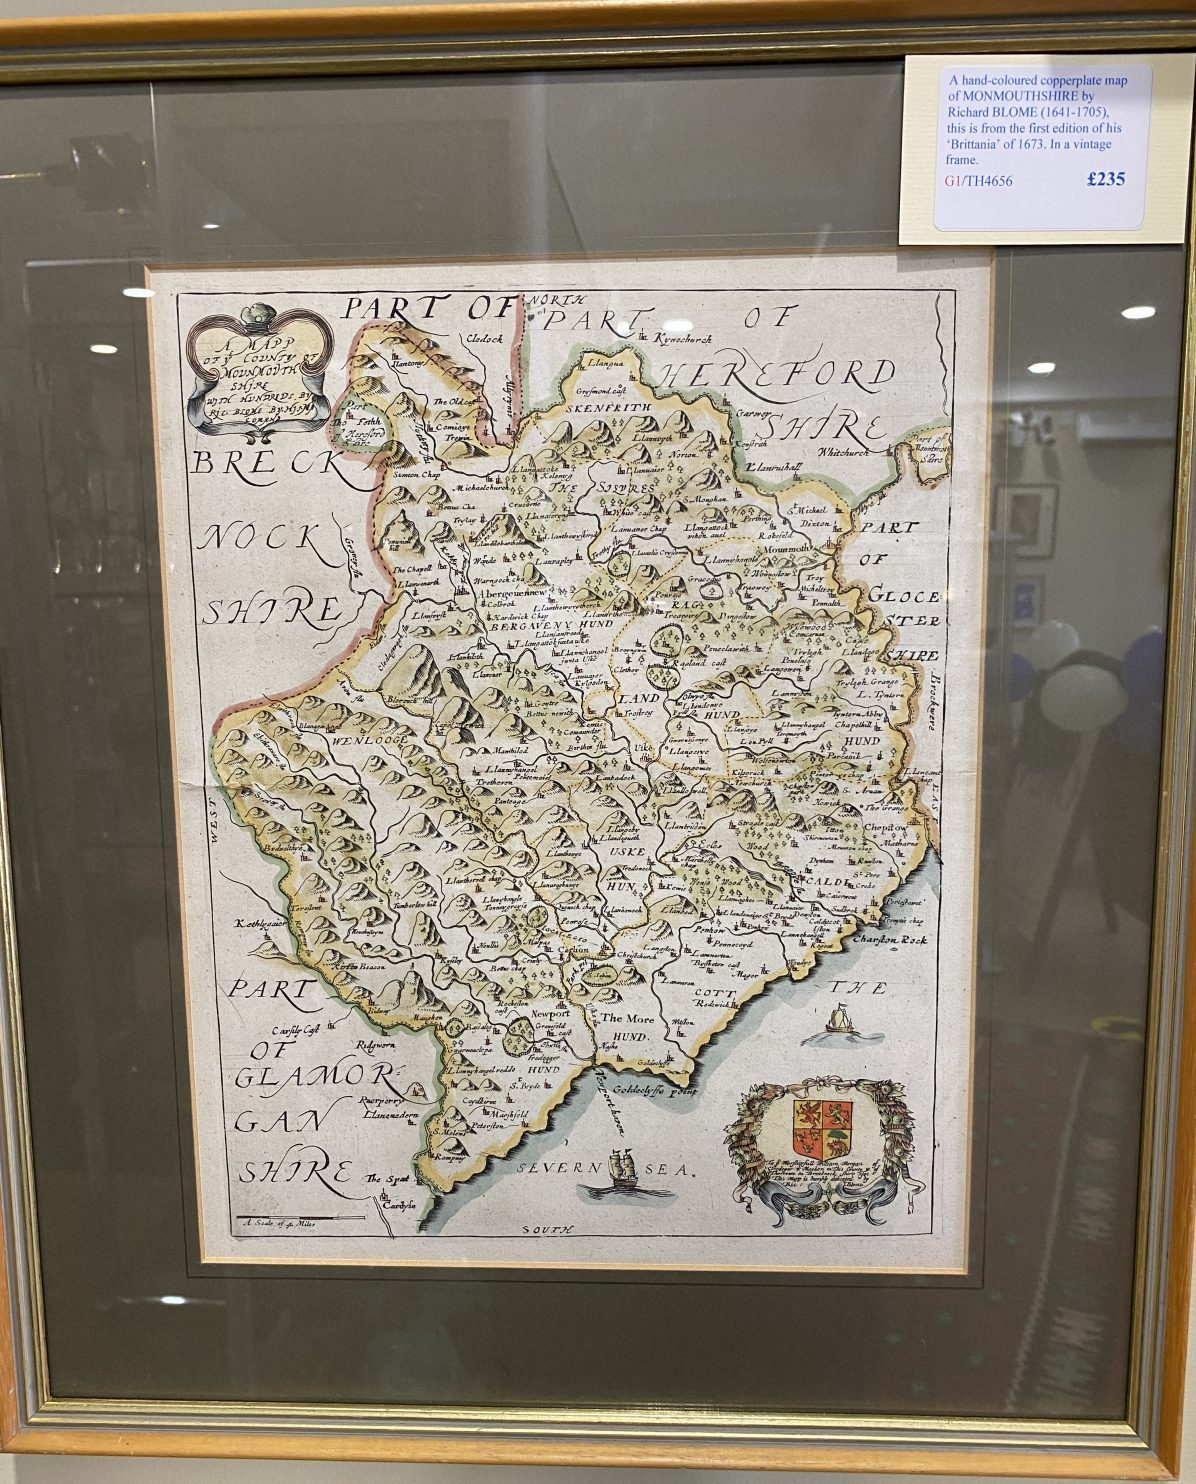 G1 - A hand-coloured copperplate map of MONMOUTHSHIRE by Richard Blome (1641-1705) from his Britannia of 1673. In a vintage frame.  £235